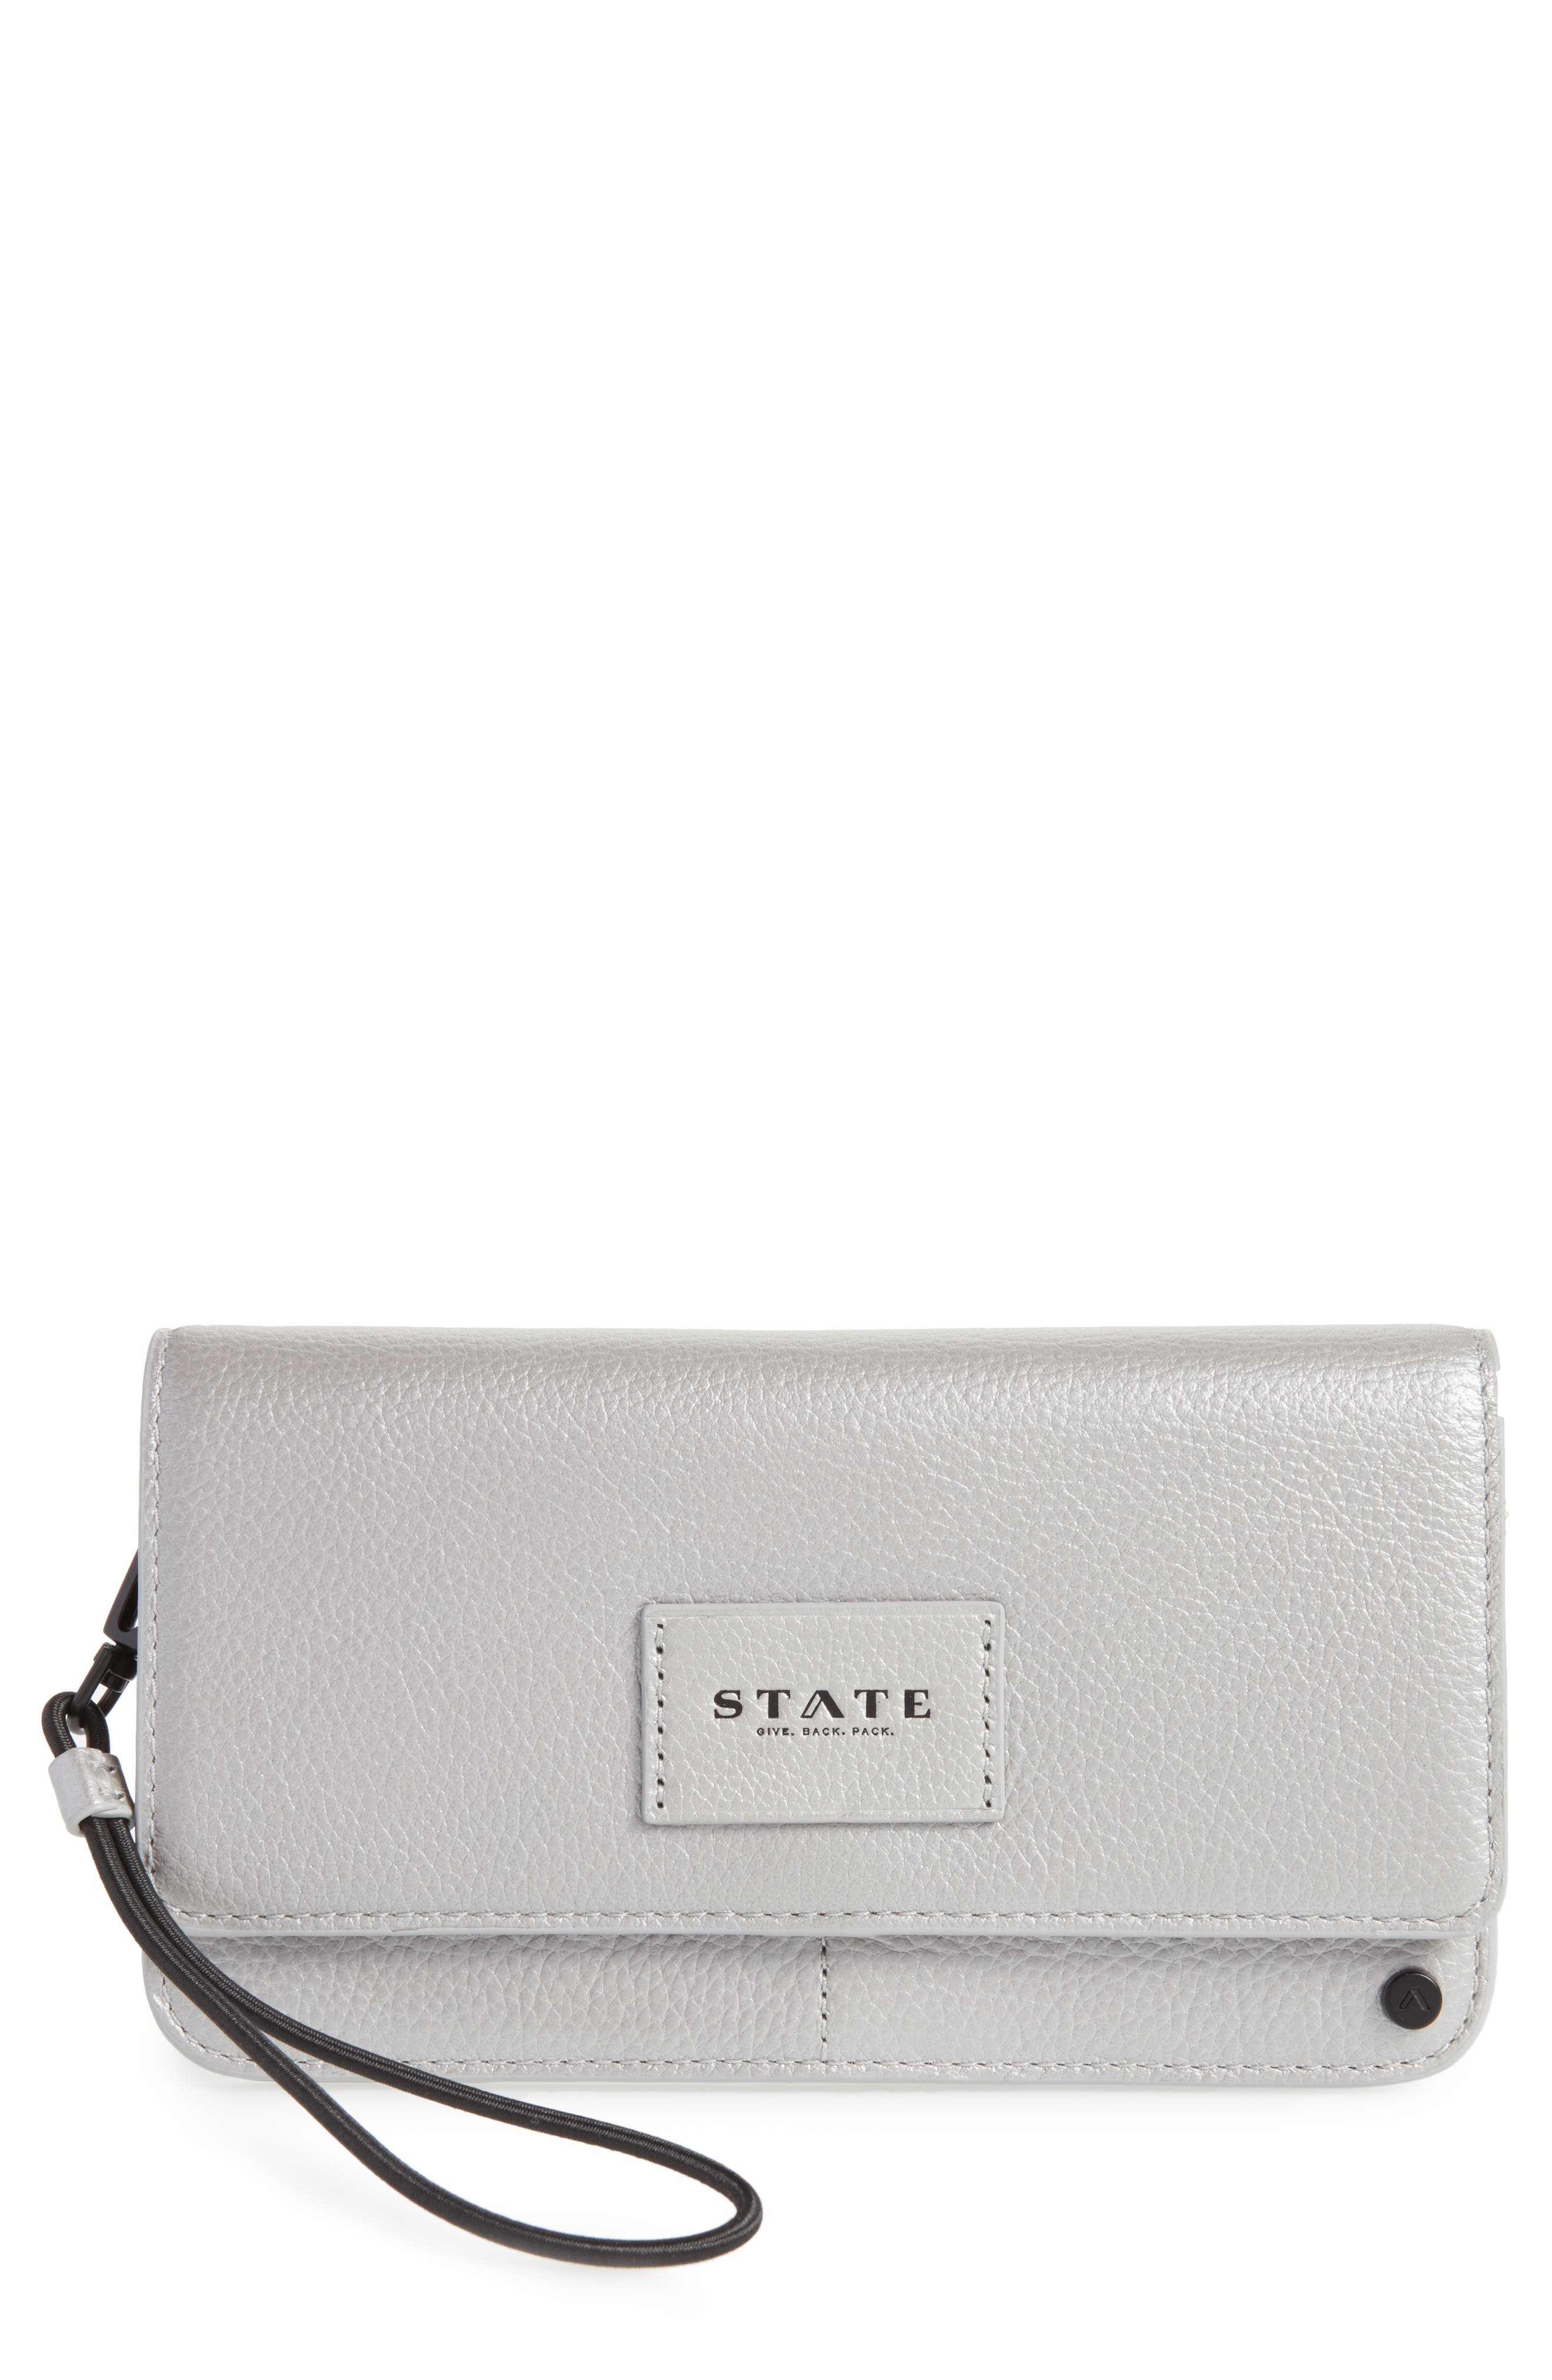 STATE Bags Greenwood Bristol Leather Wristlet